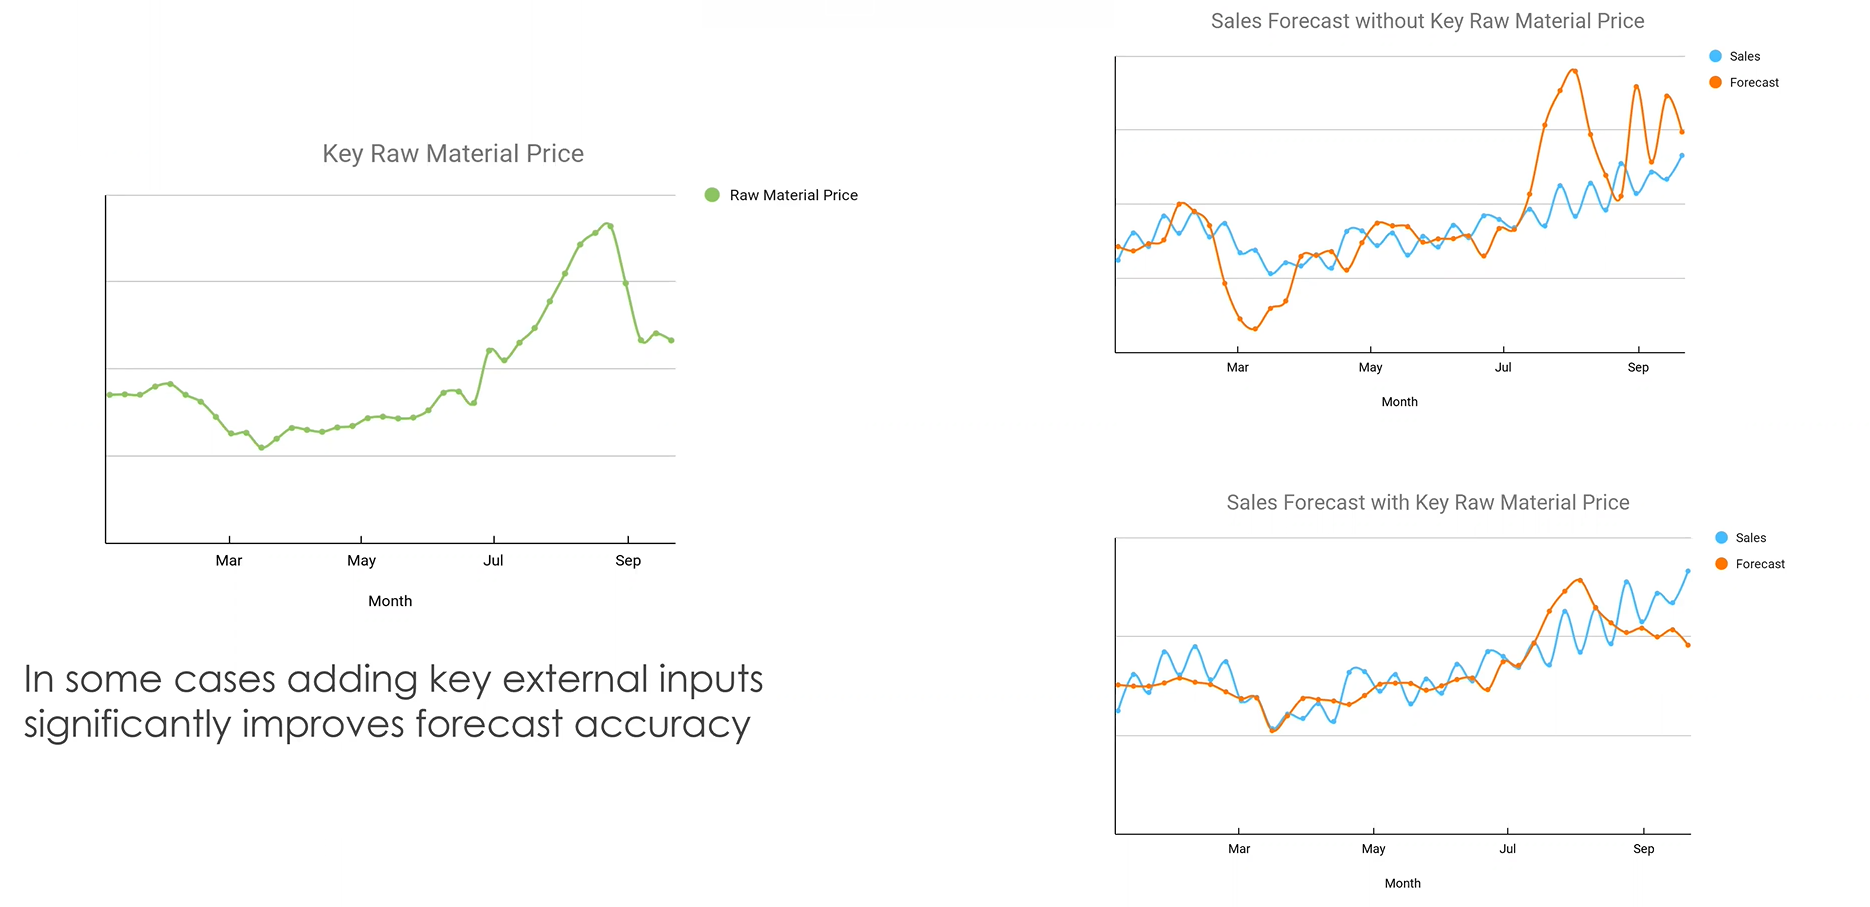 xternal data such as key raw material prices